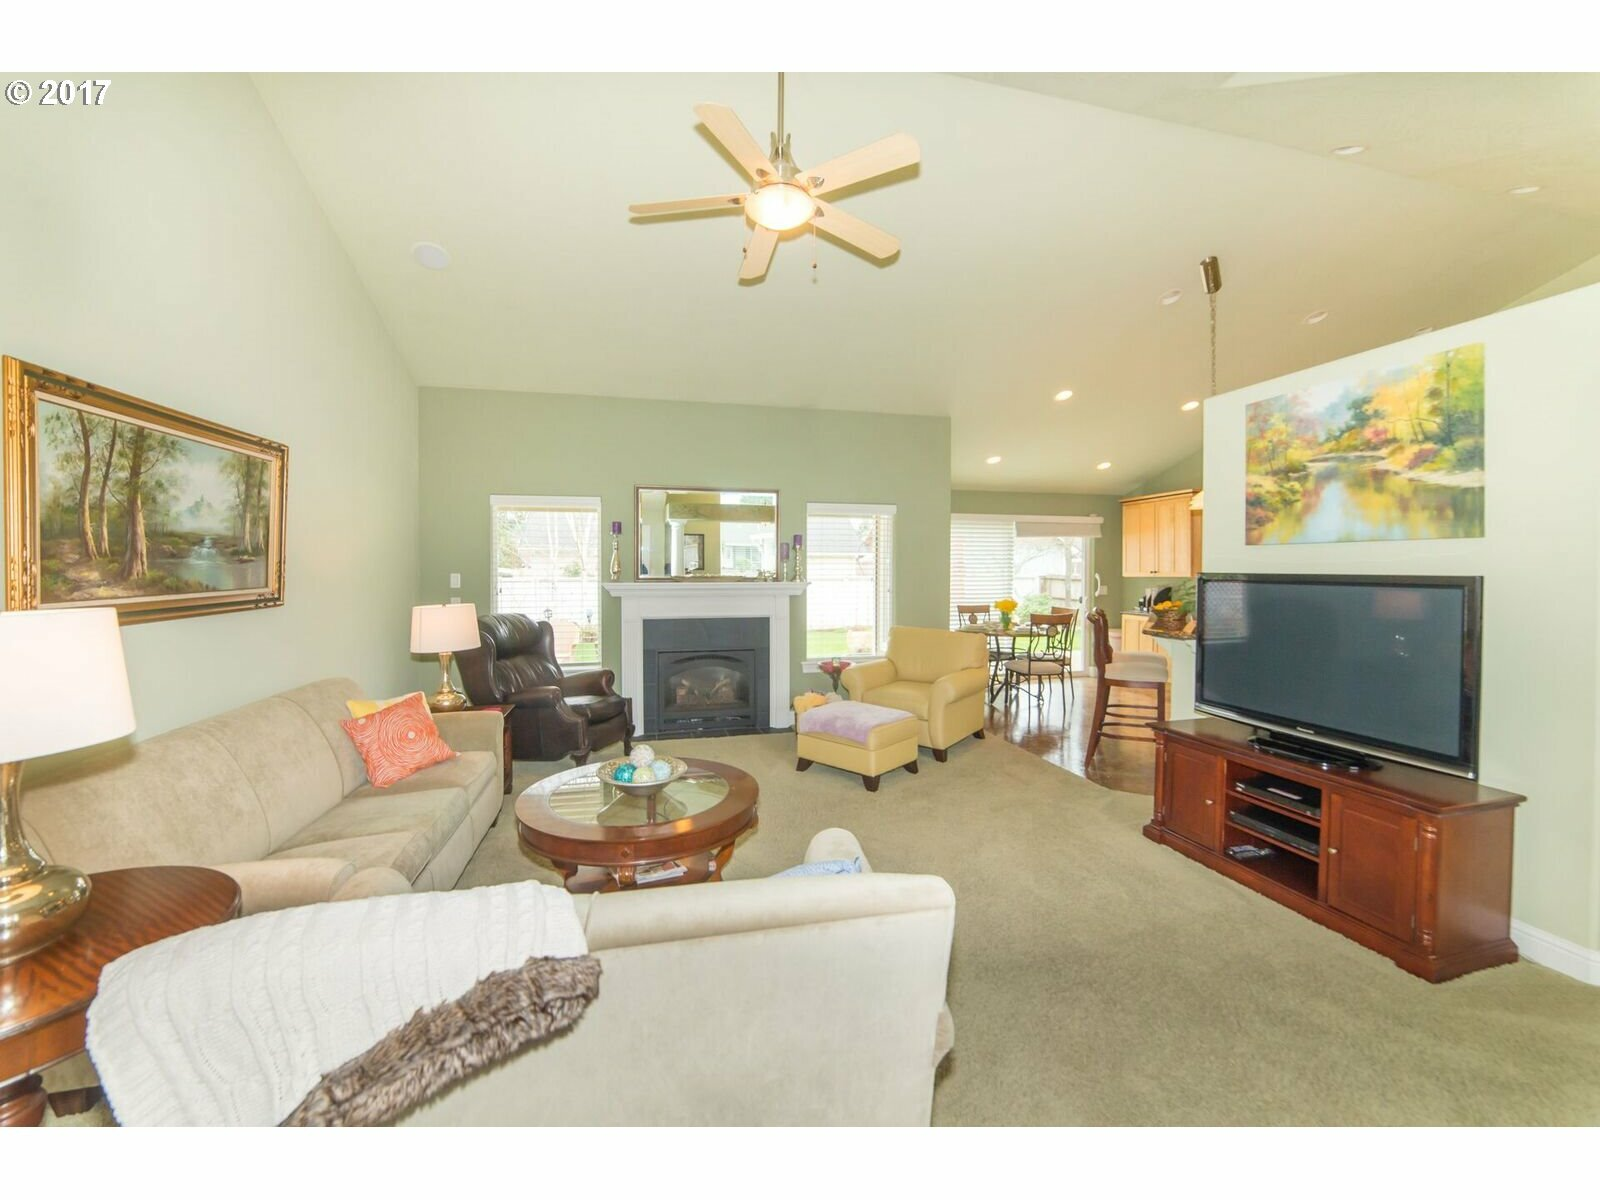 1630 Fairview Pl, Cottage Grove, OR - USA (photo 4)